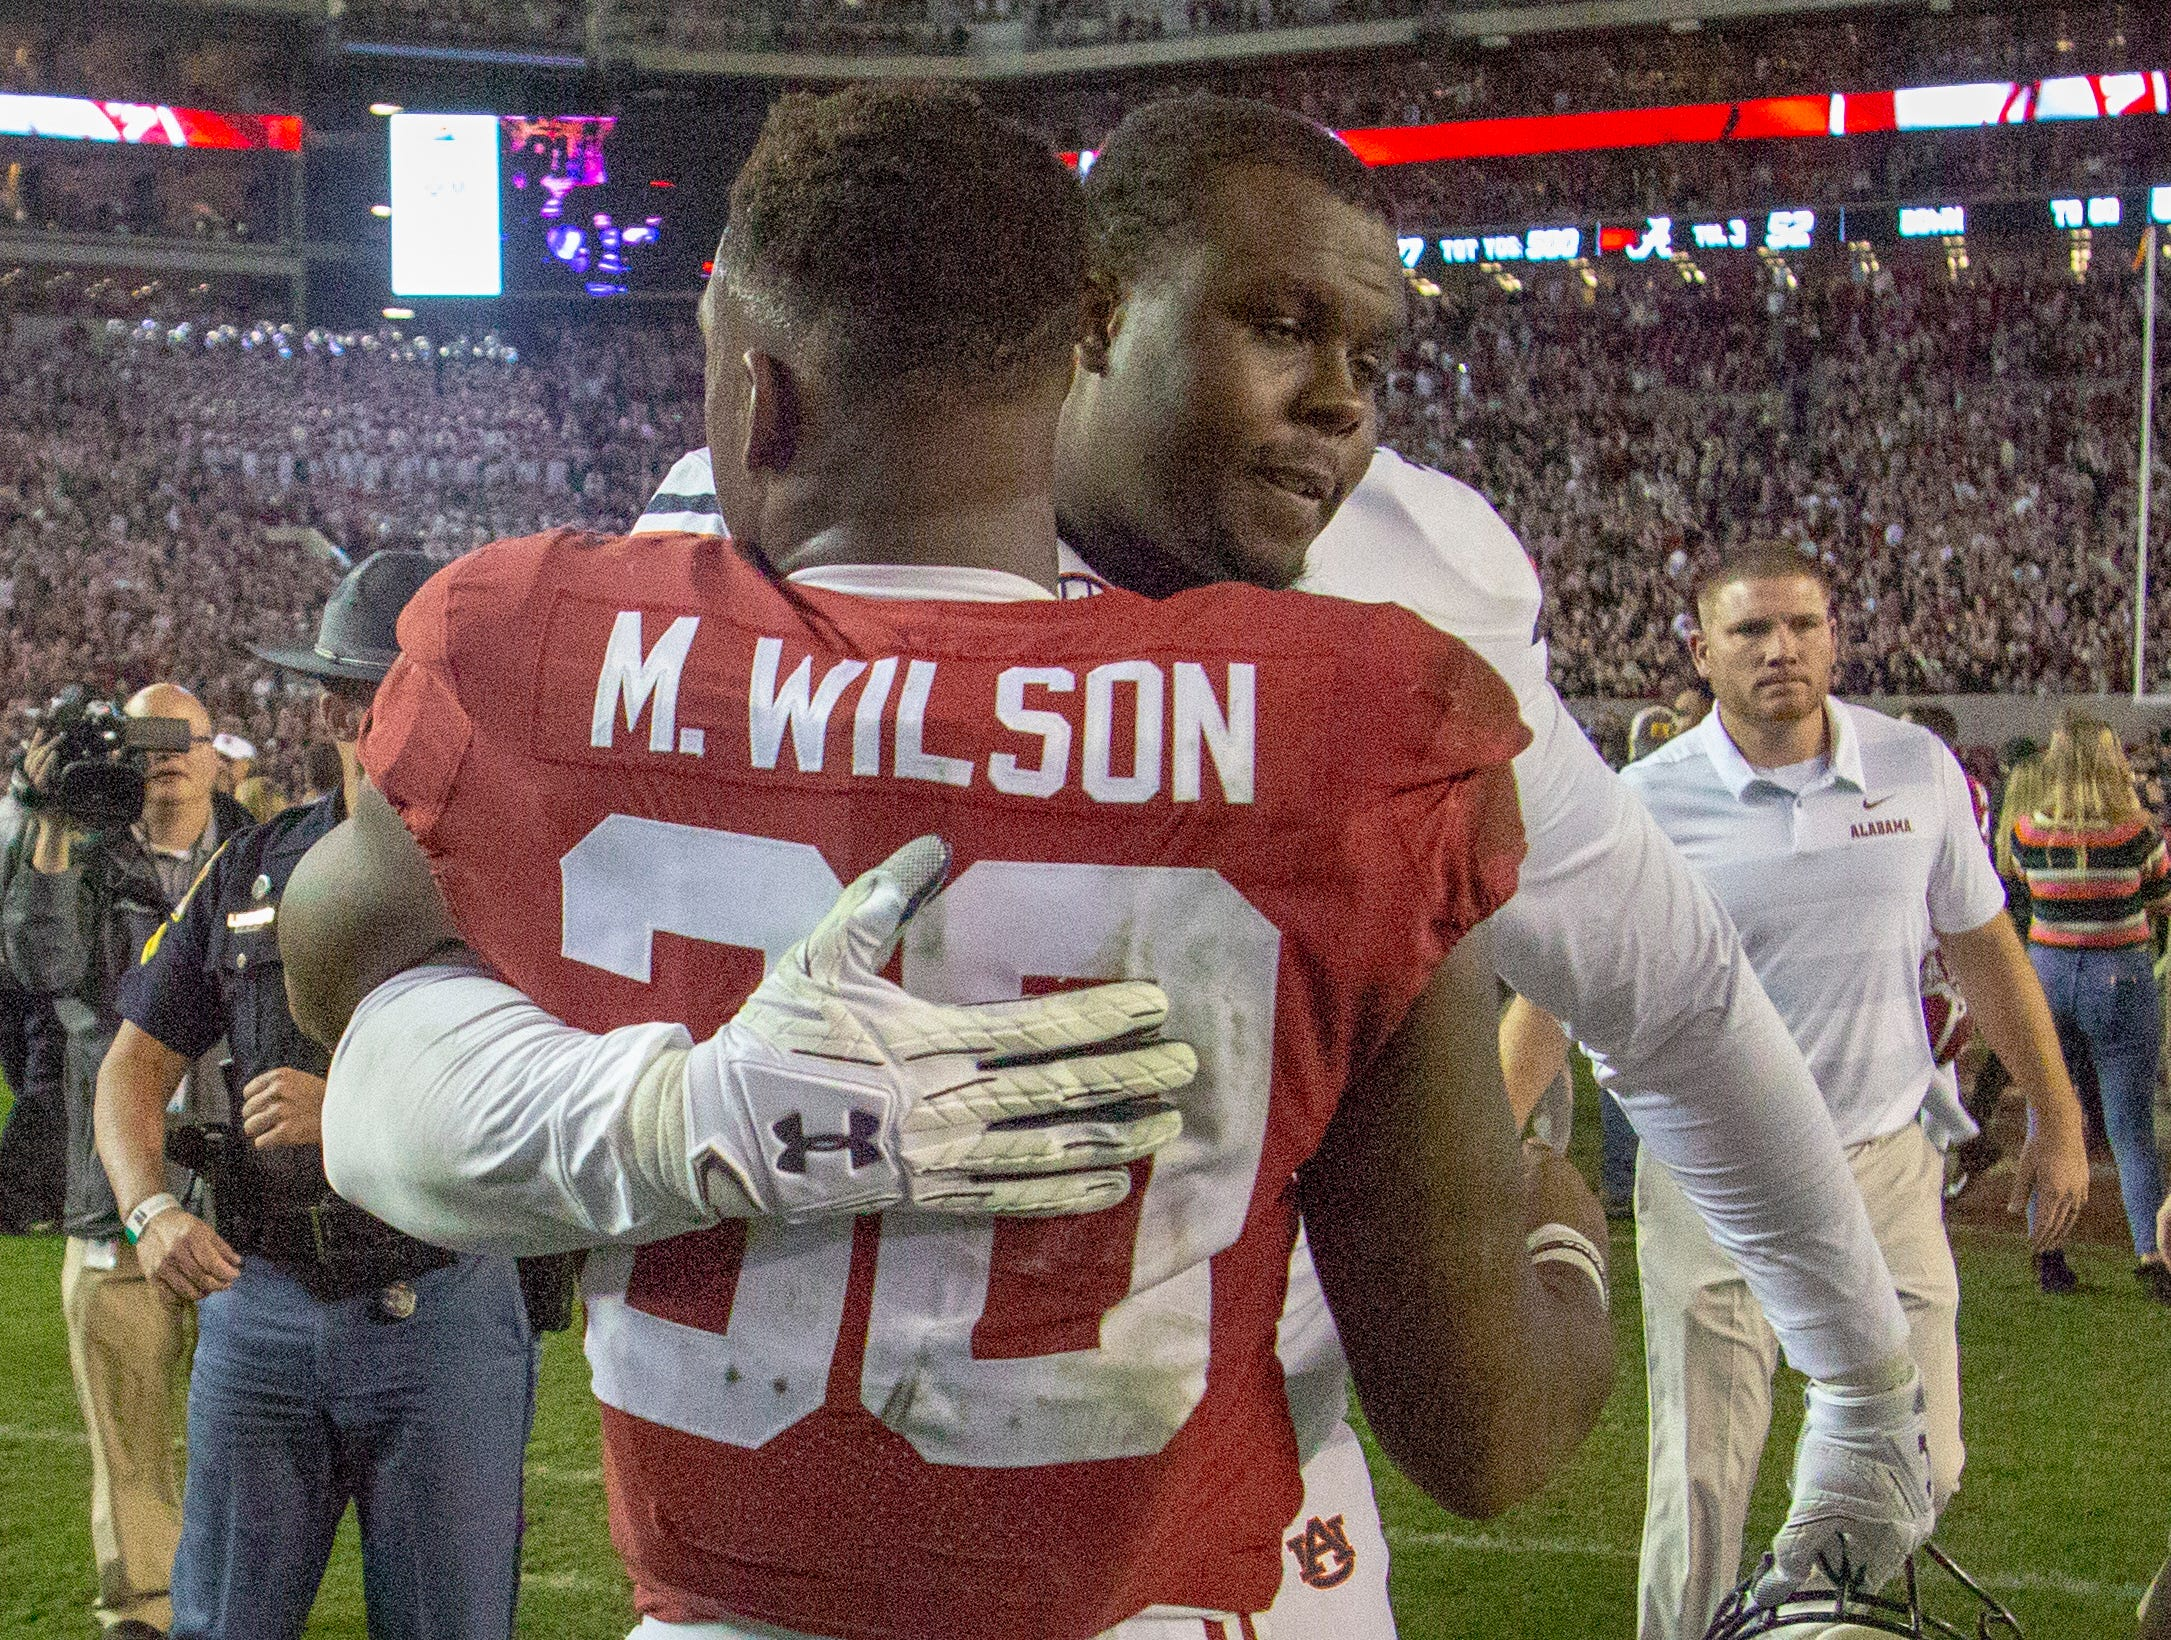 Alabama's Mack Wilson, and Montgomery Native, hugs Auburn's Alec Jackson after the game.